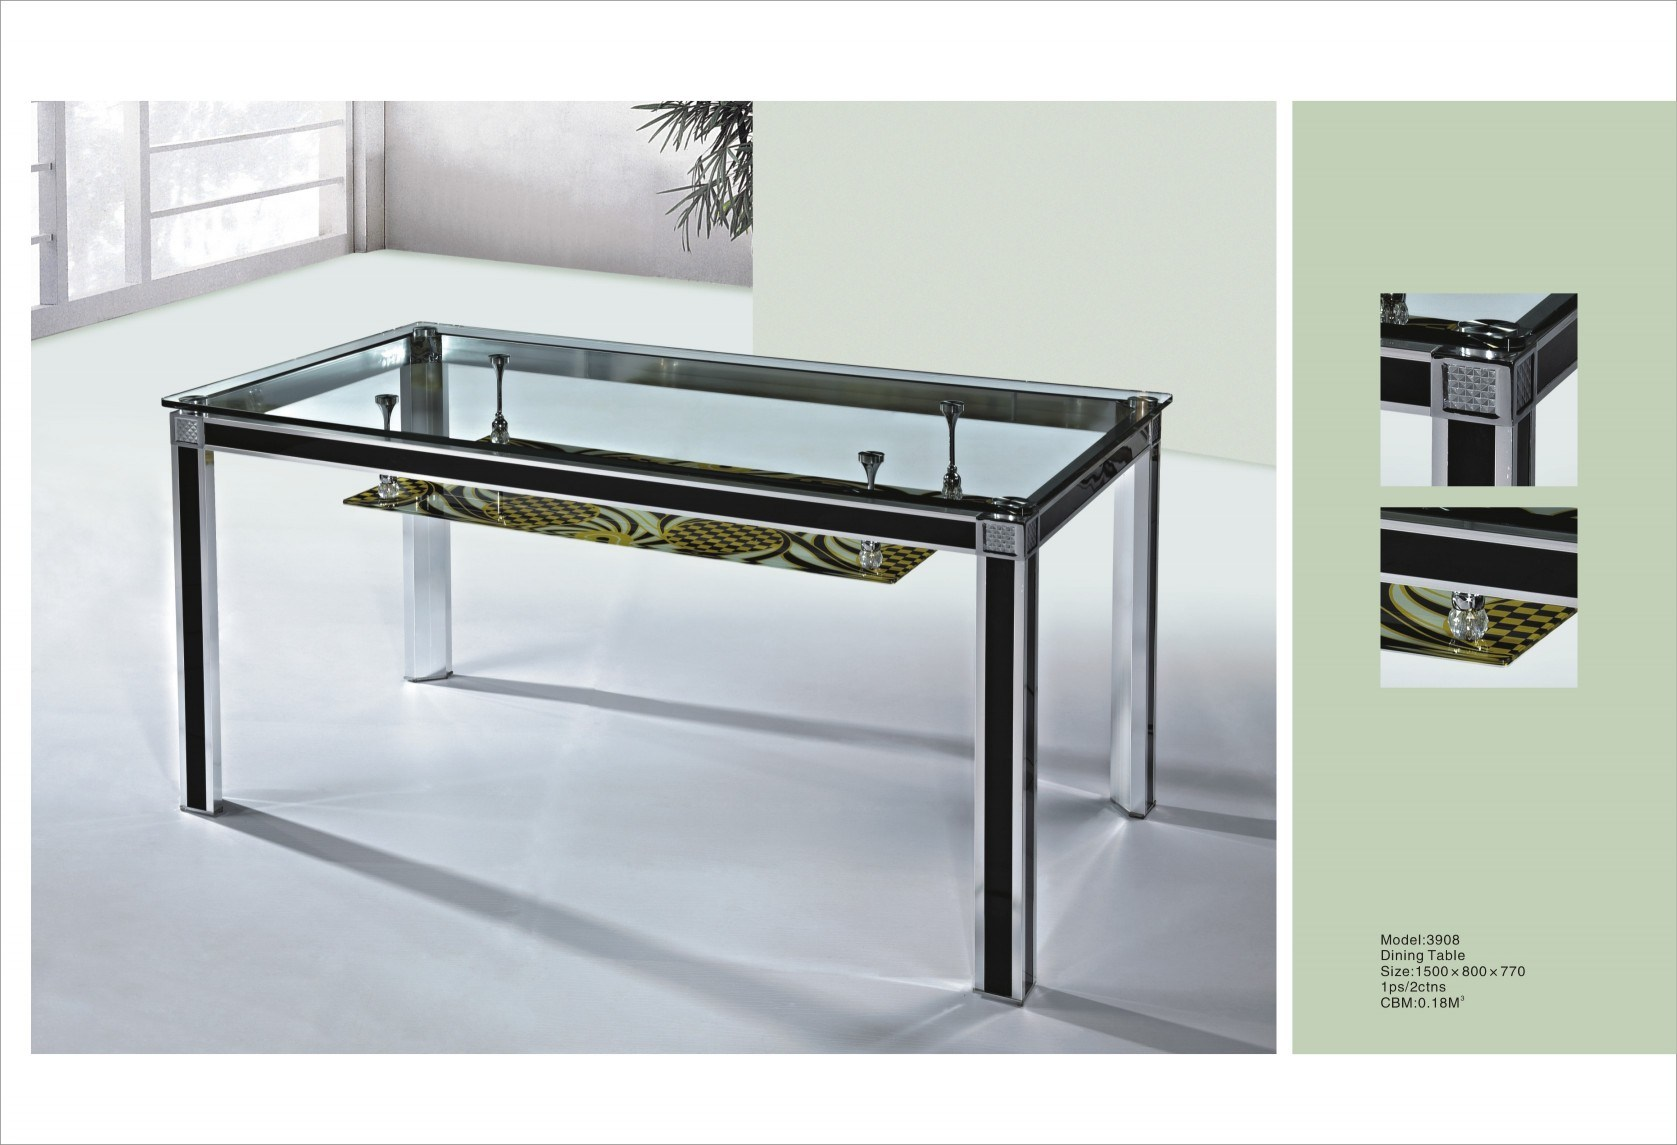 Remarkable Glass Dining Table 1677 x 1145 · 210 kB · jpeg